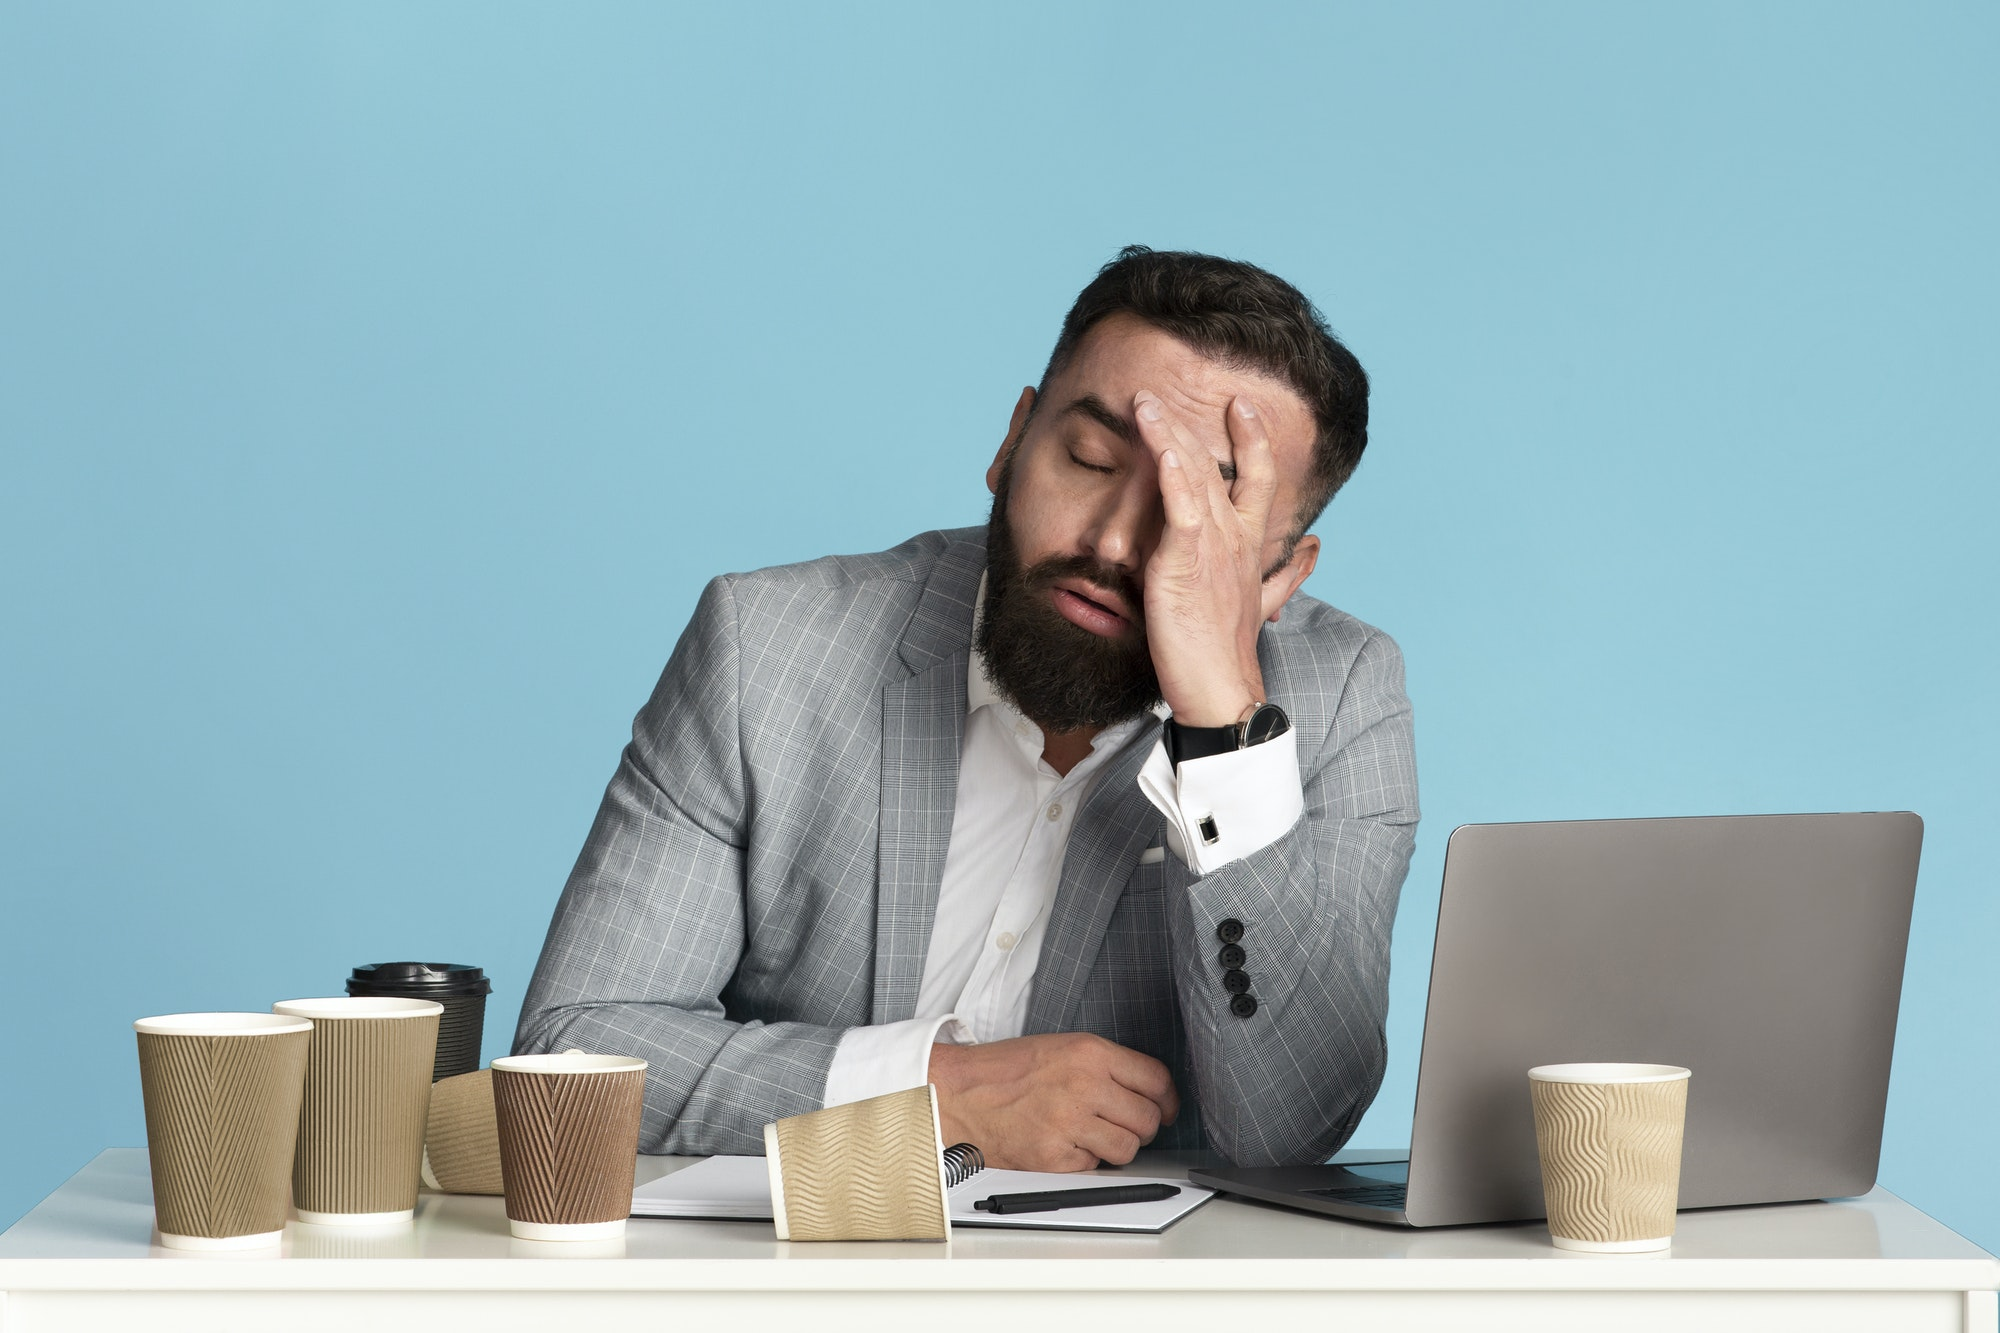 Working overtime. Exhausted businessman sitting at desk with laptop and empty coffee cups against